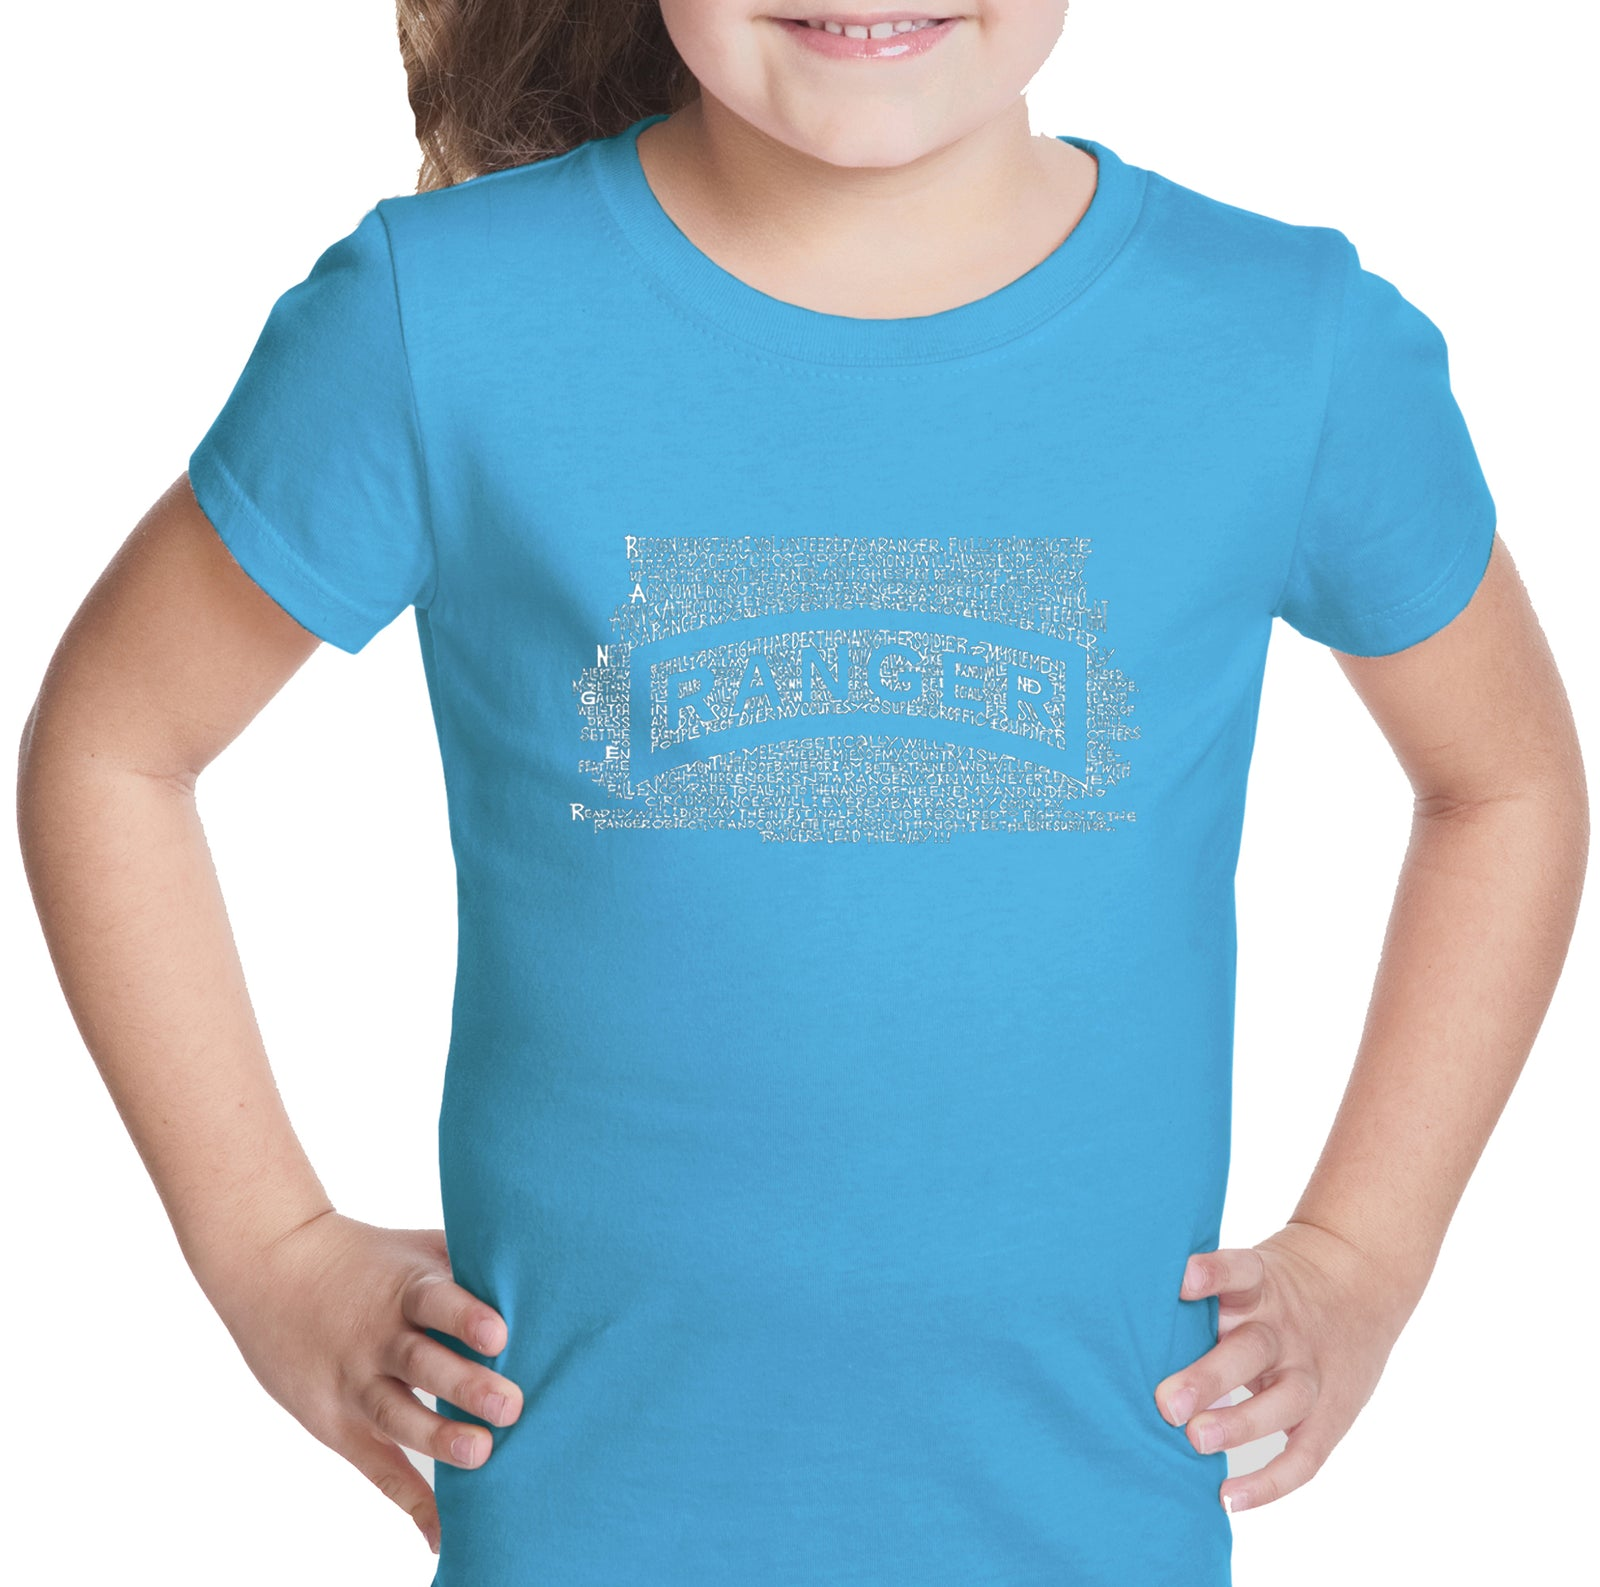 Girl's T-shirt - The US Ranger Creed